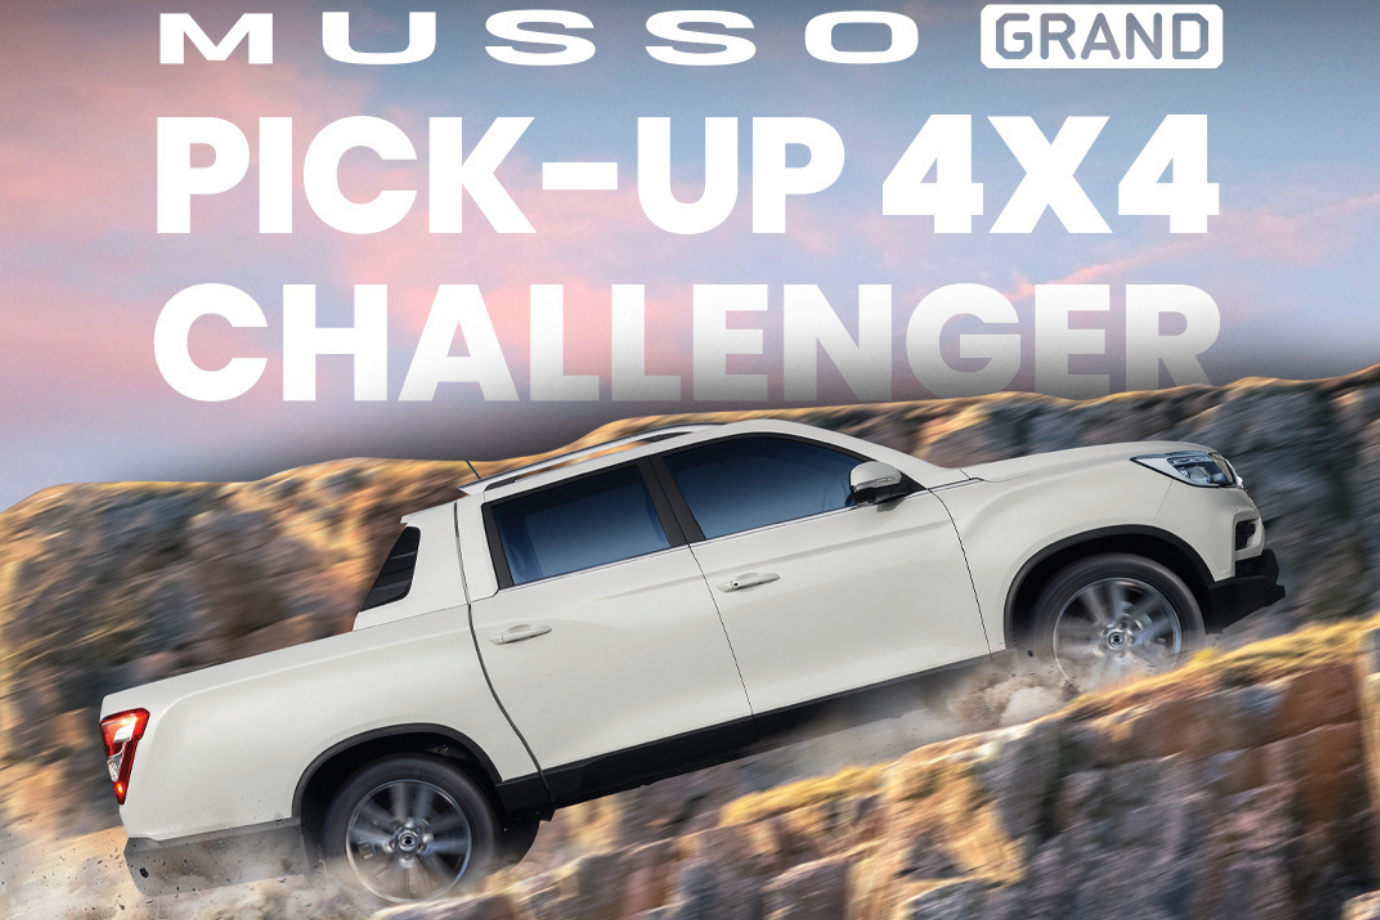 Musso pick up 4 x 4 Challenger